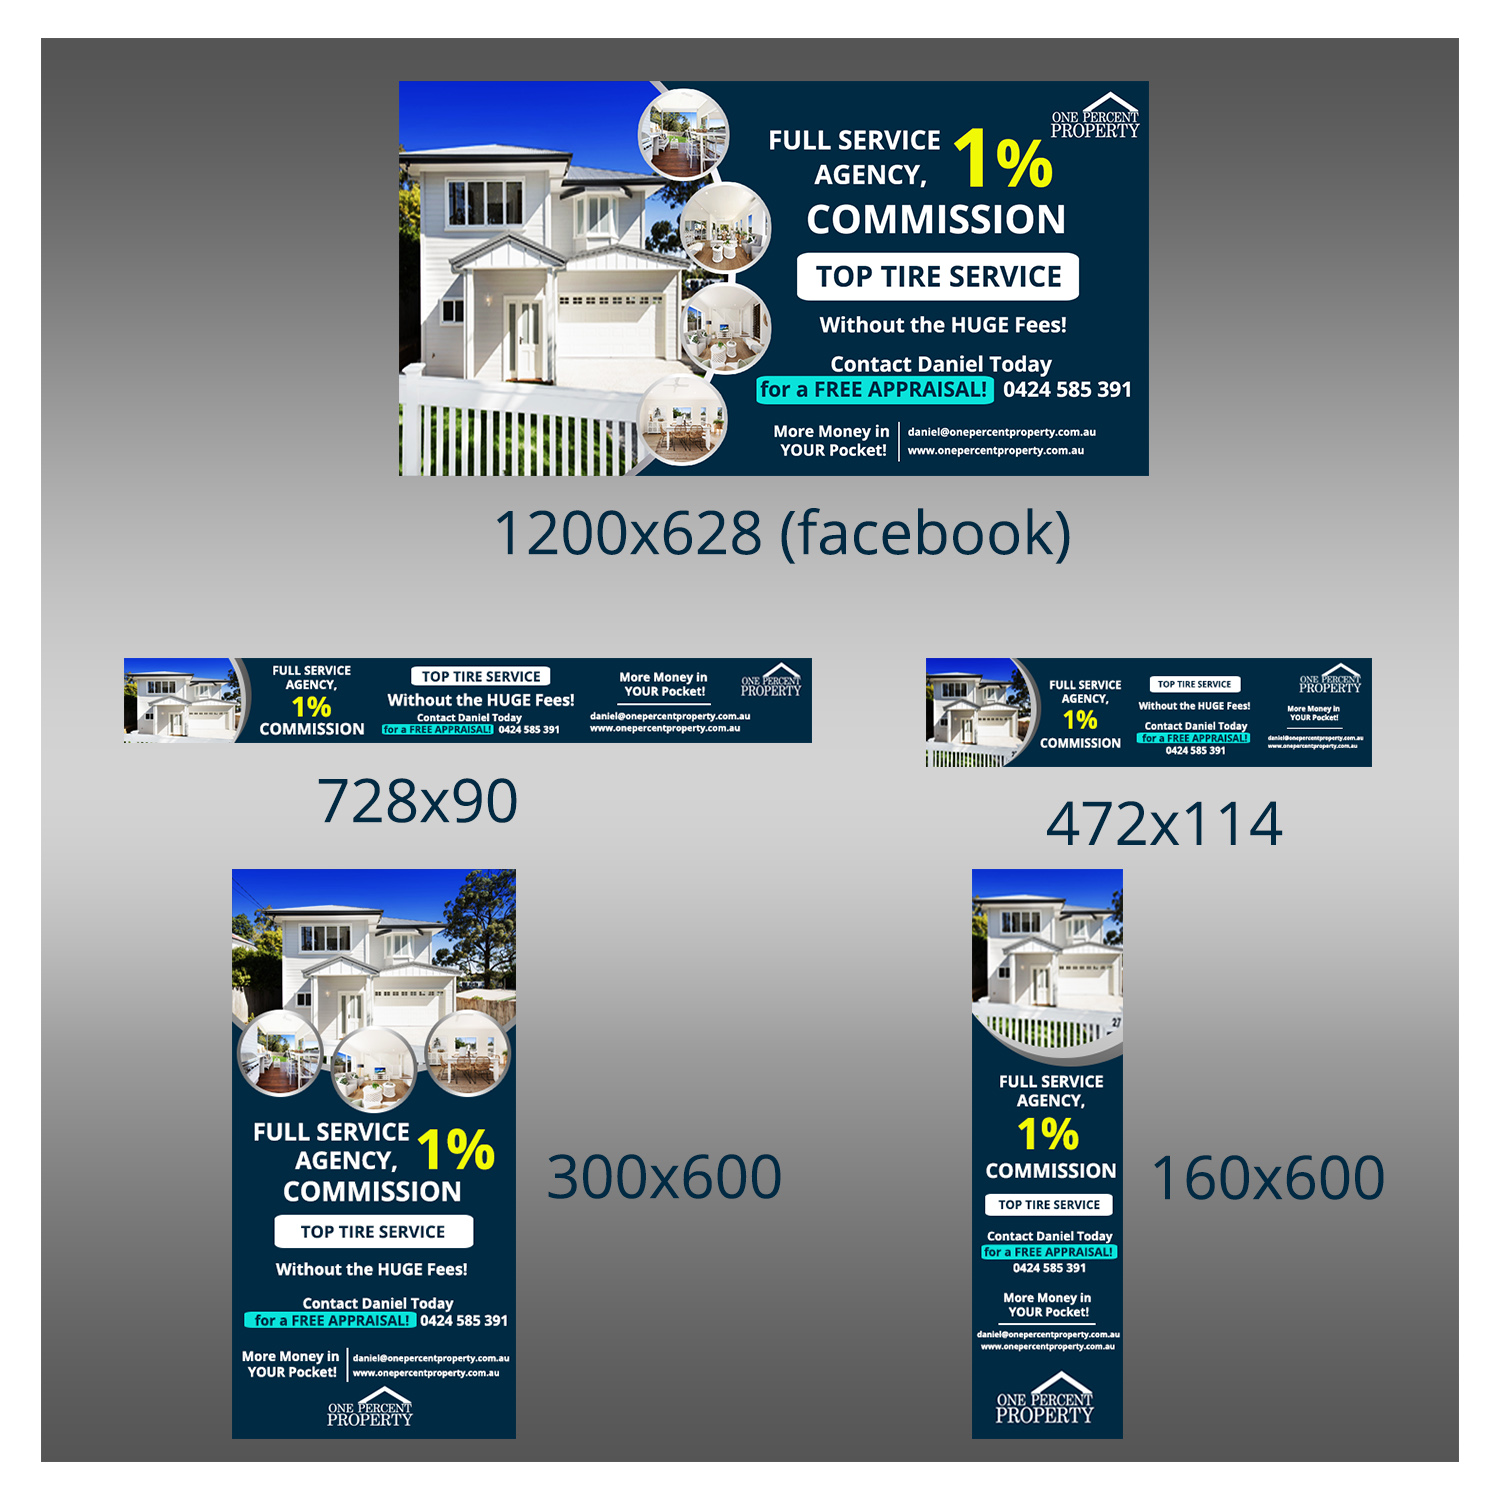 Upmarket Bold Real Estate Agent Banner Ad Design For A Company By Thili Creations Design 22501978